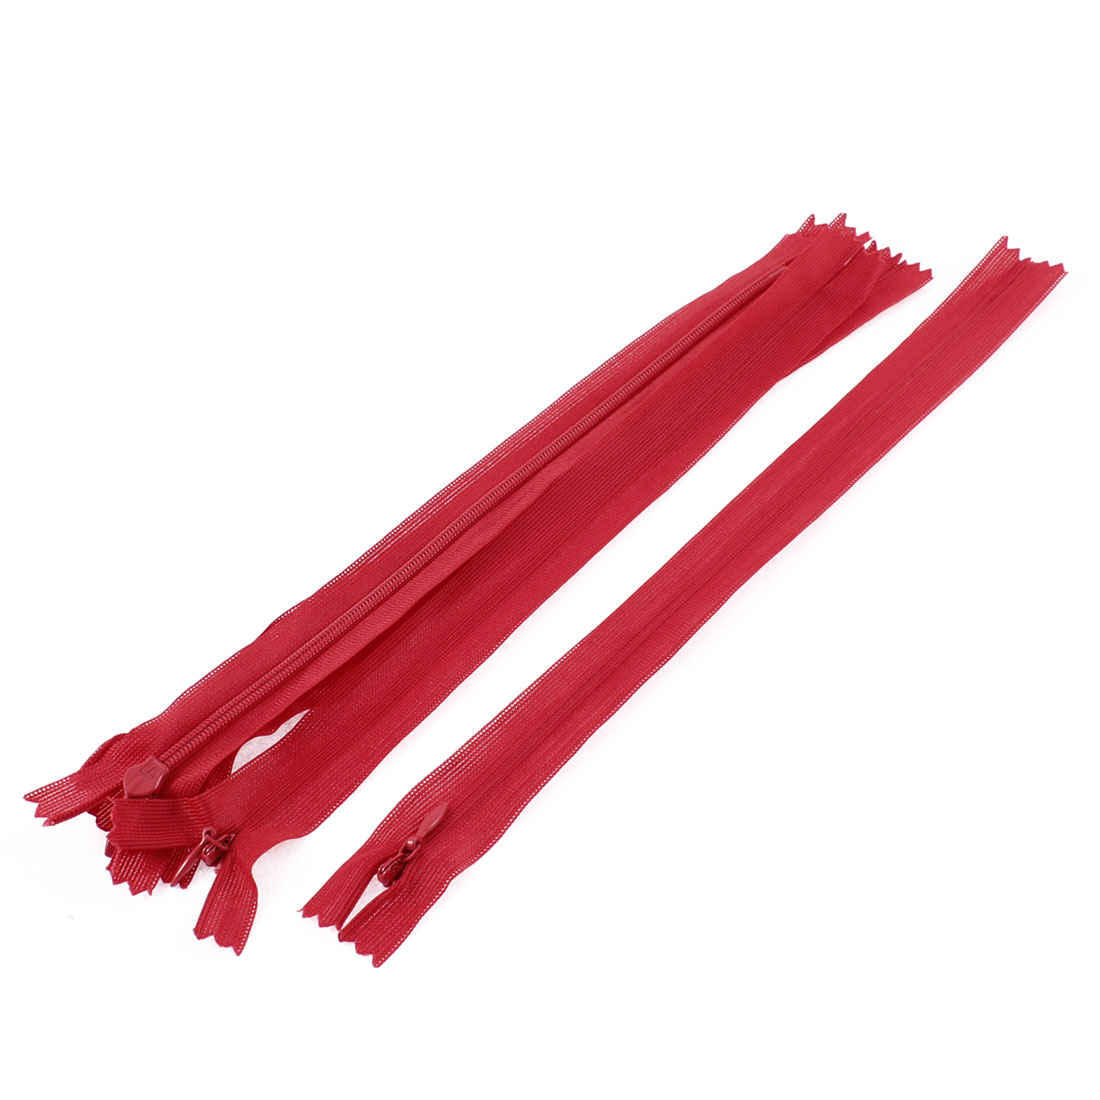 Dress Pants Closed End Nylon Zippers Tailor Sewing Craft Tool Red 25cm 5 Pcs